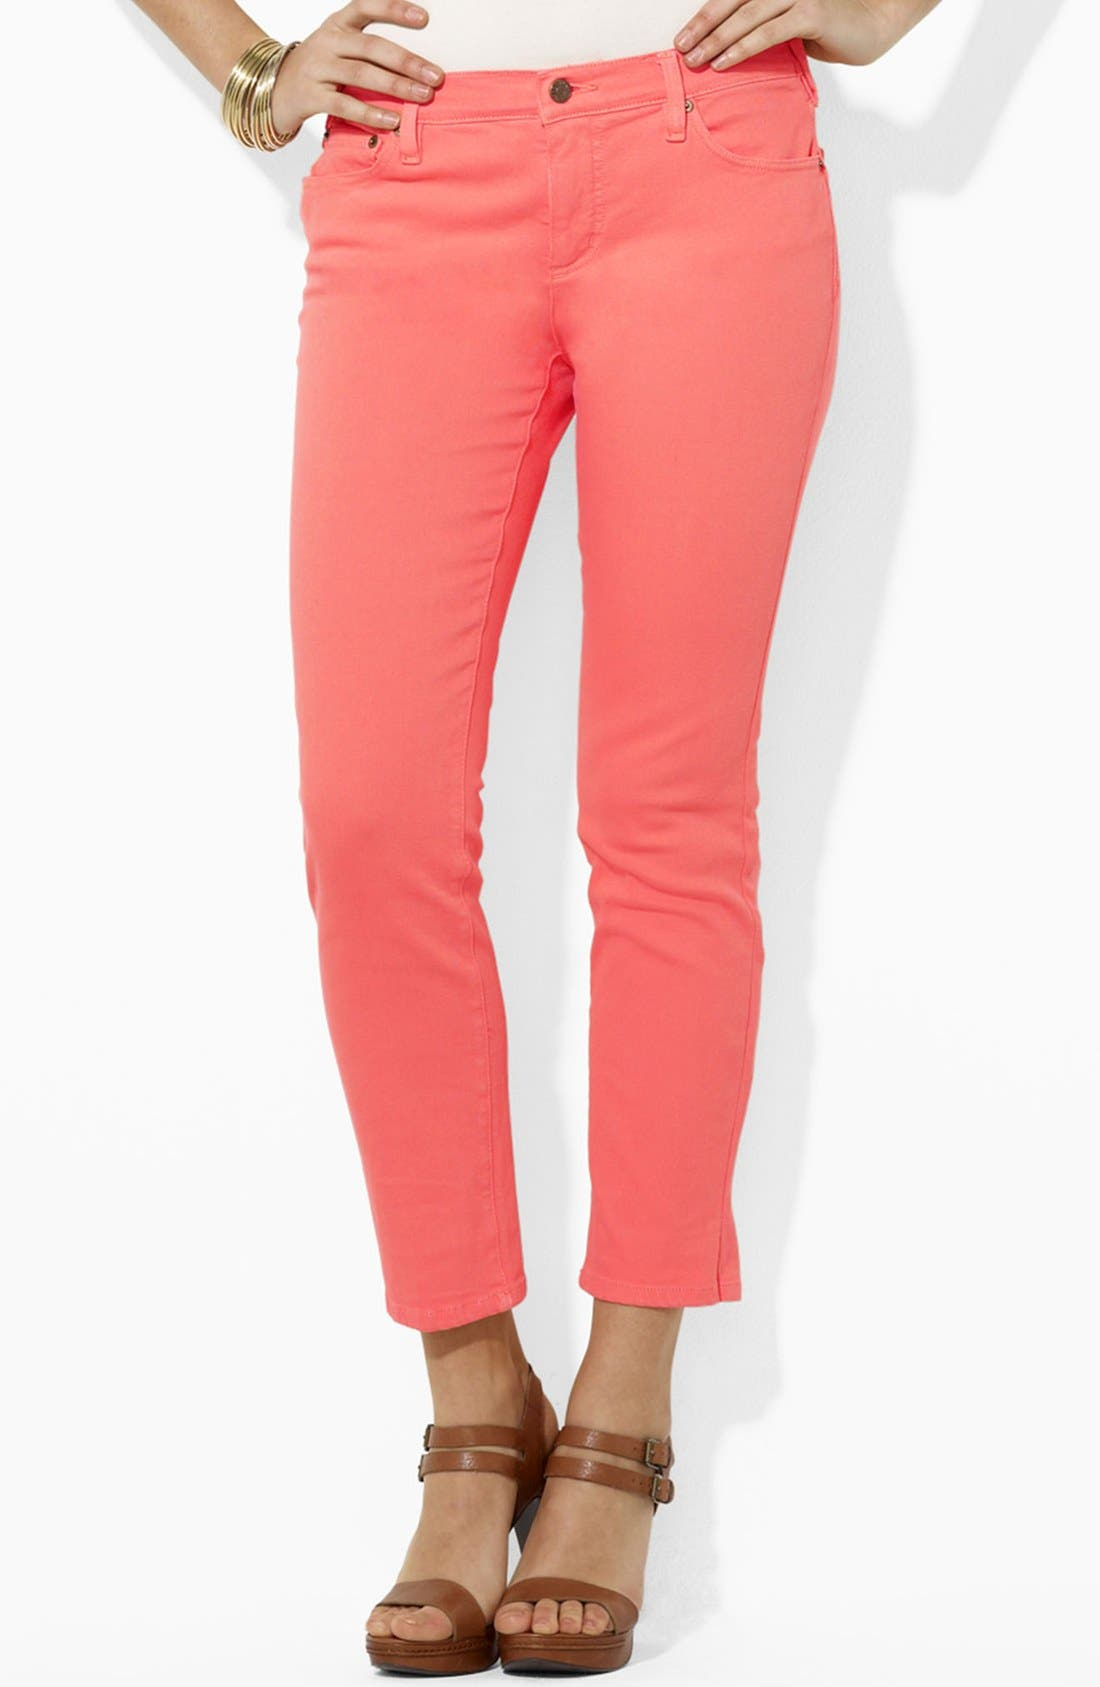 Main Image - Lauren Ralph Lauren Slimming Straight Leg Ankle Pants (Petite) (Online Only)